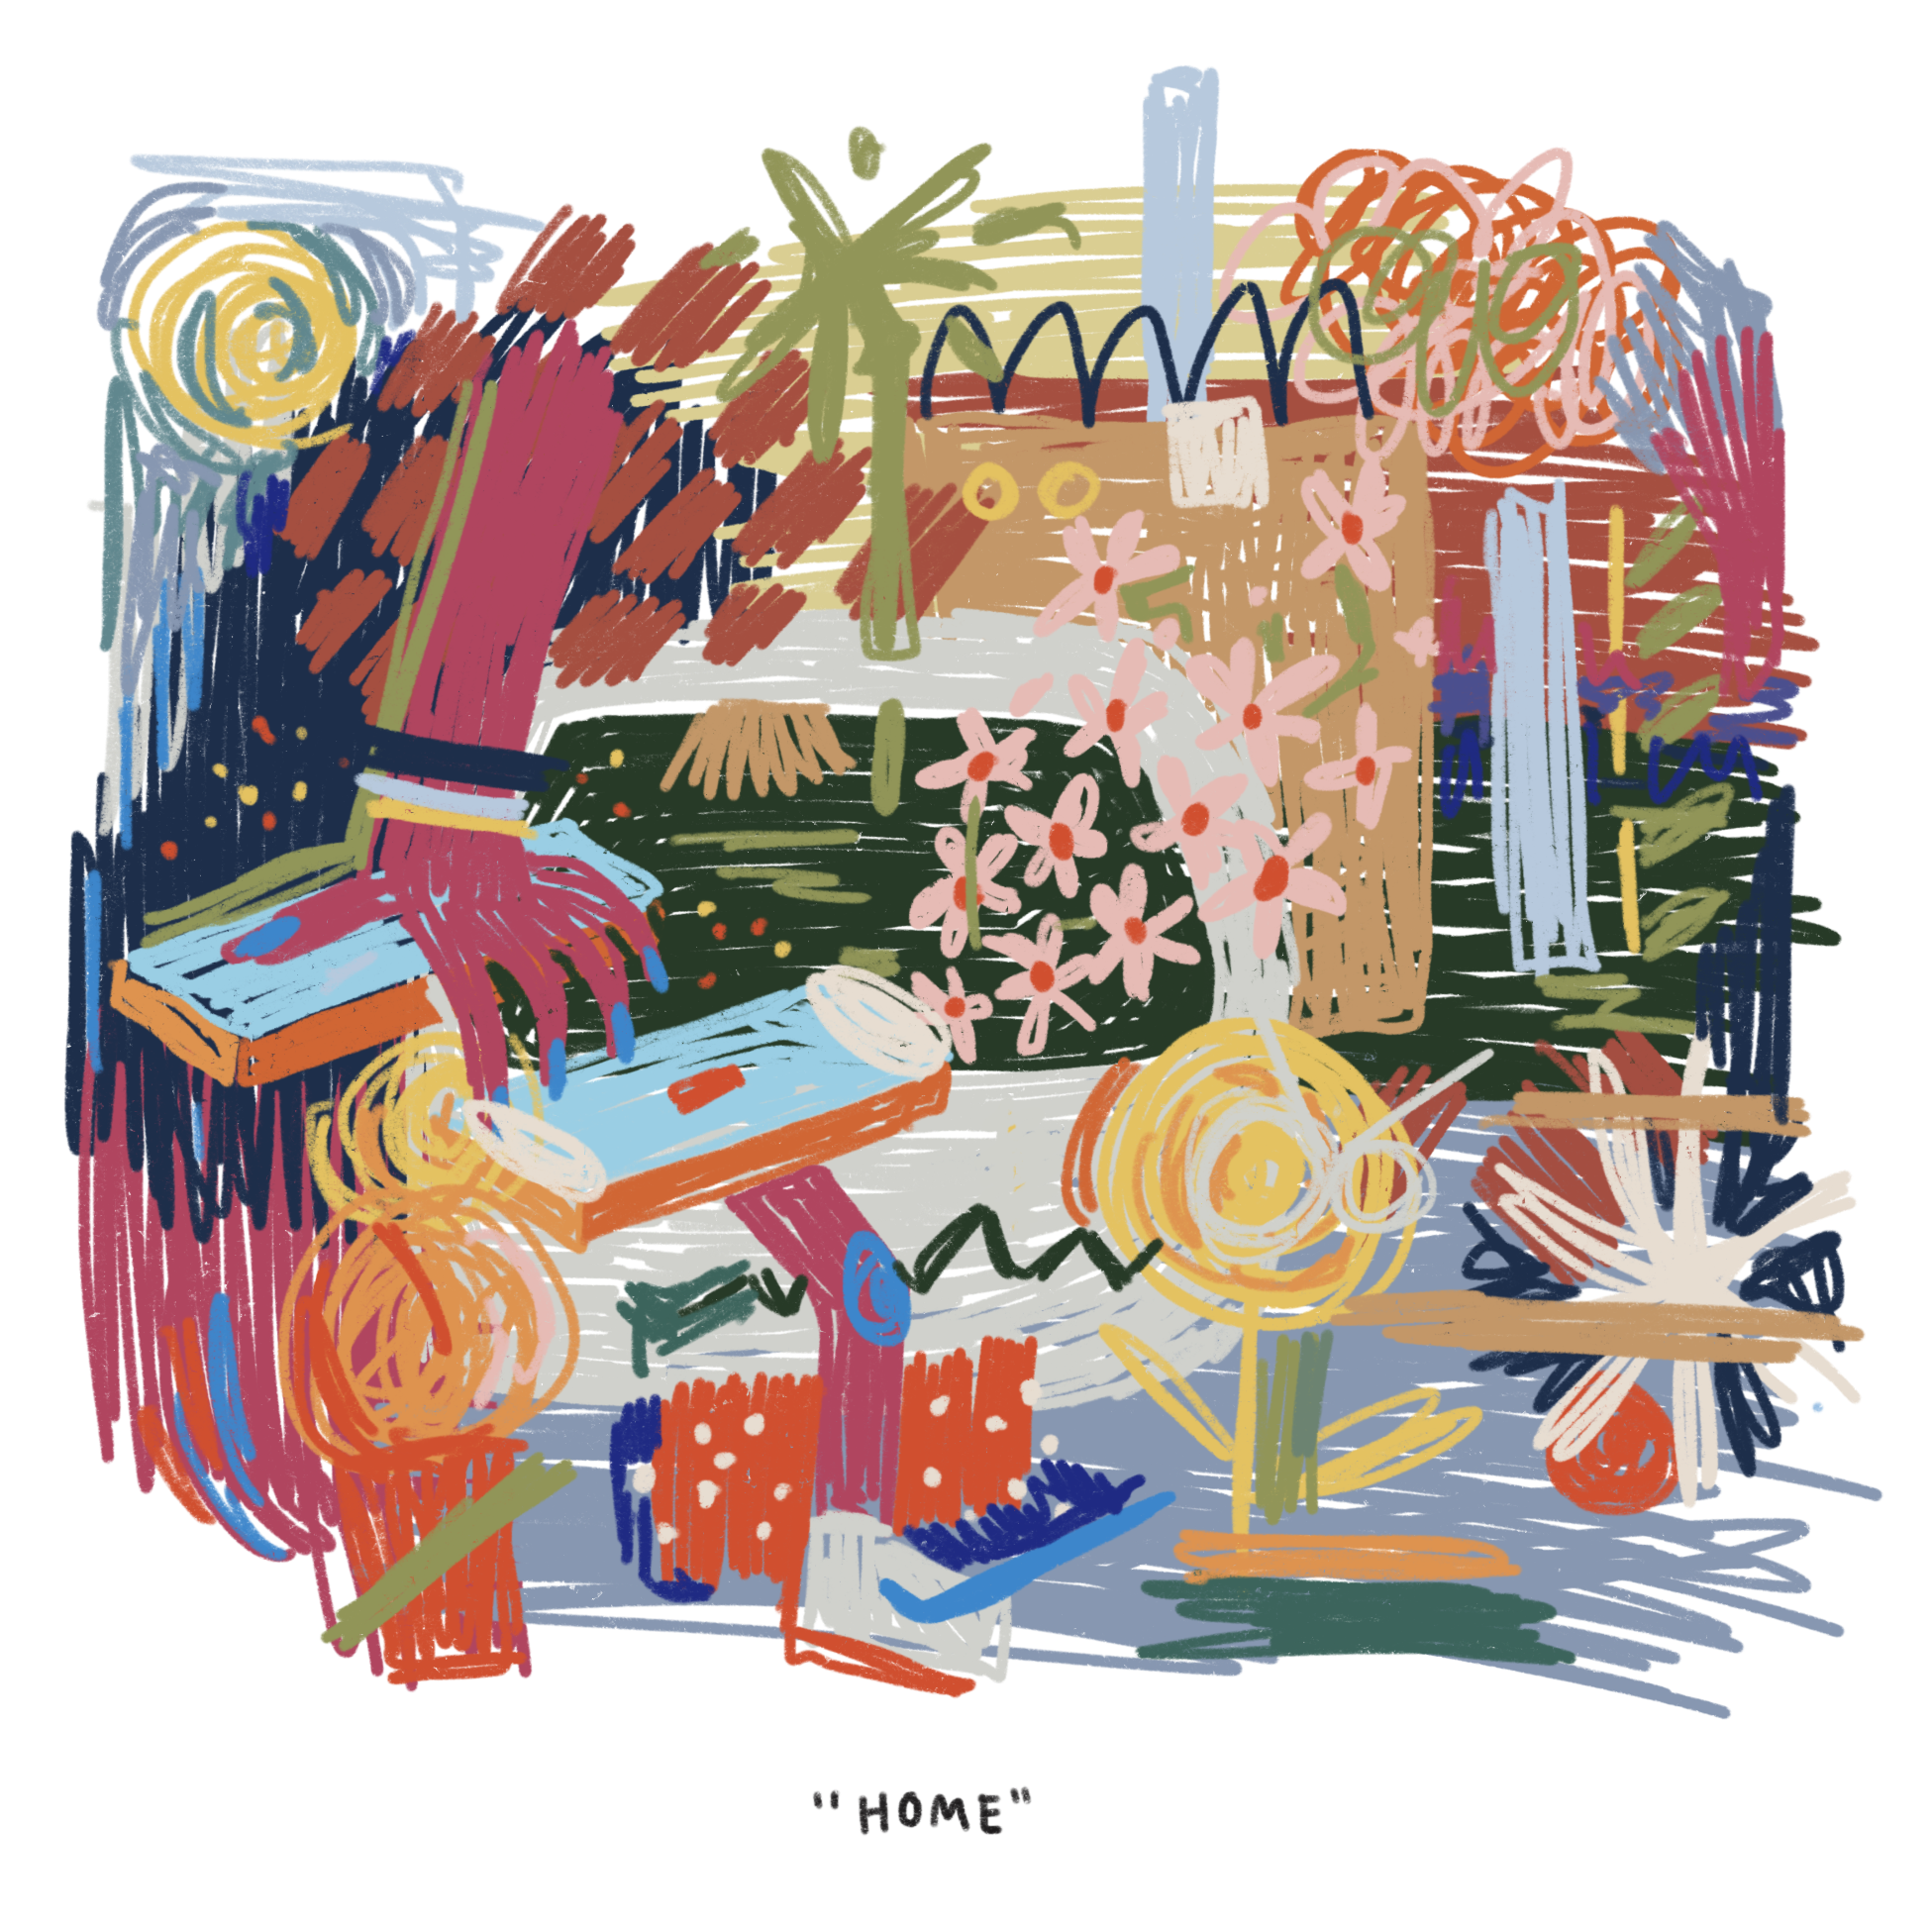 """Abstract illustration with various lines, shapes, and colors labelled """"HOME"""""""